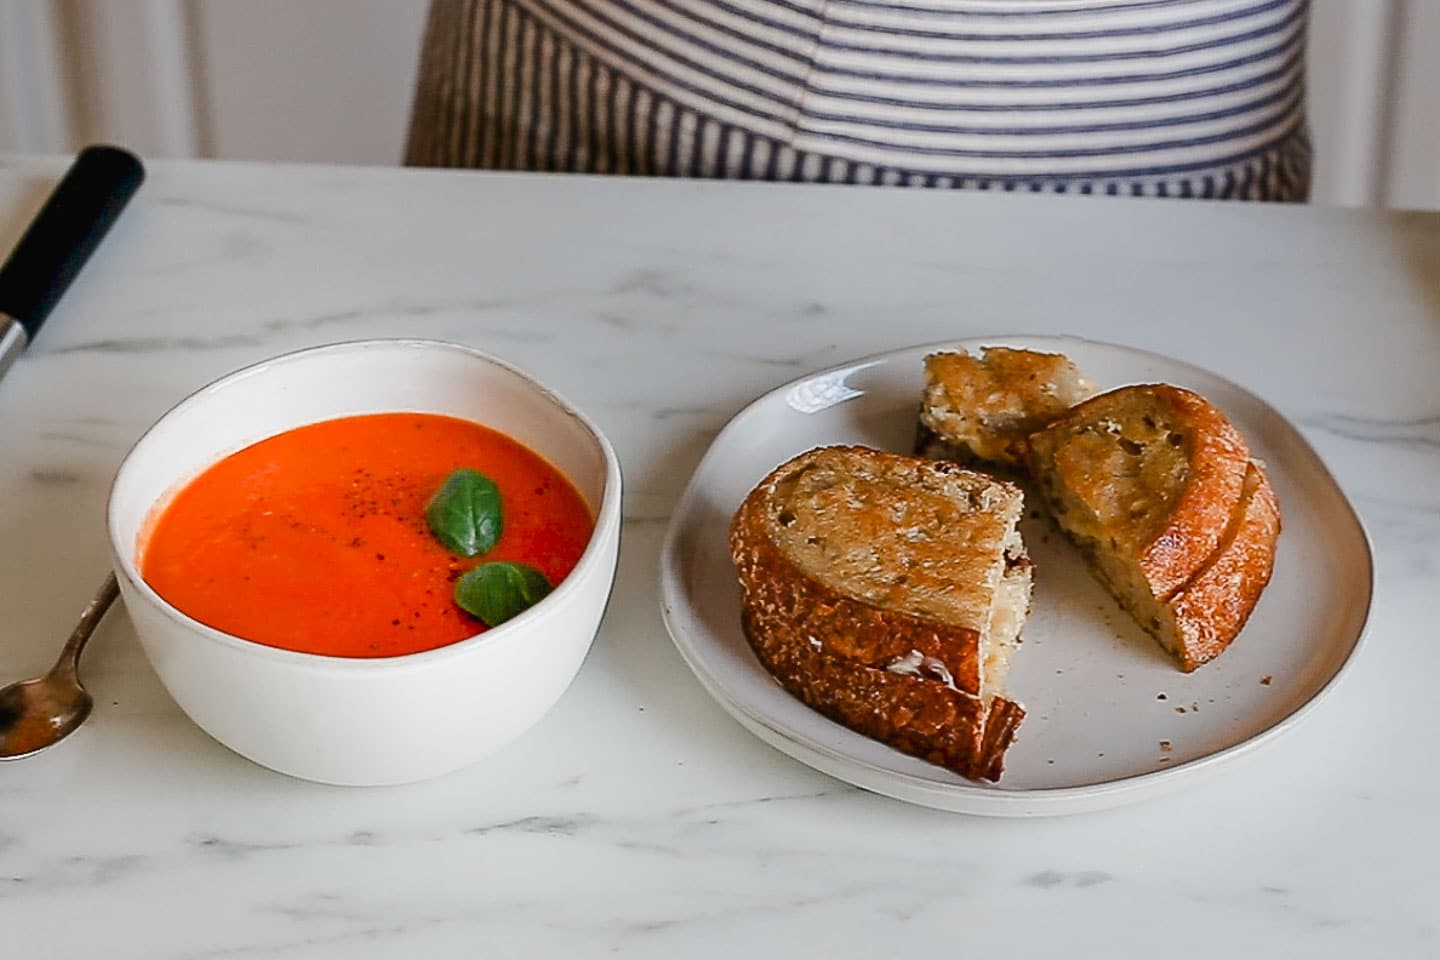 Bowl of homemade tomato soup and grilled cheese sandwich